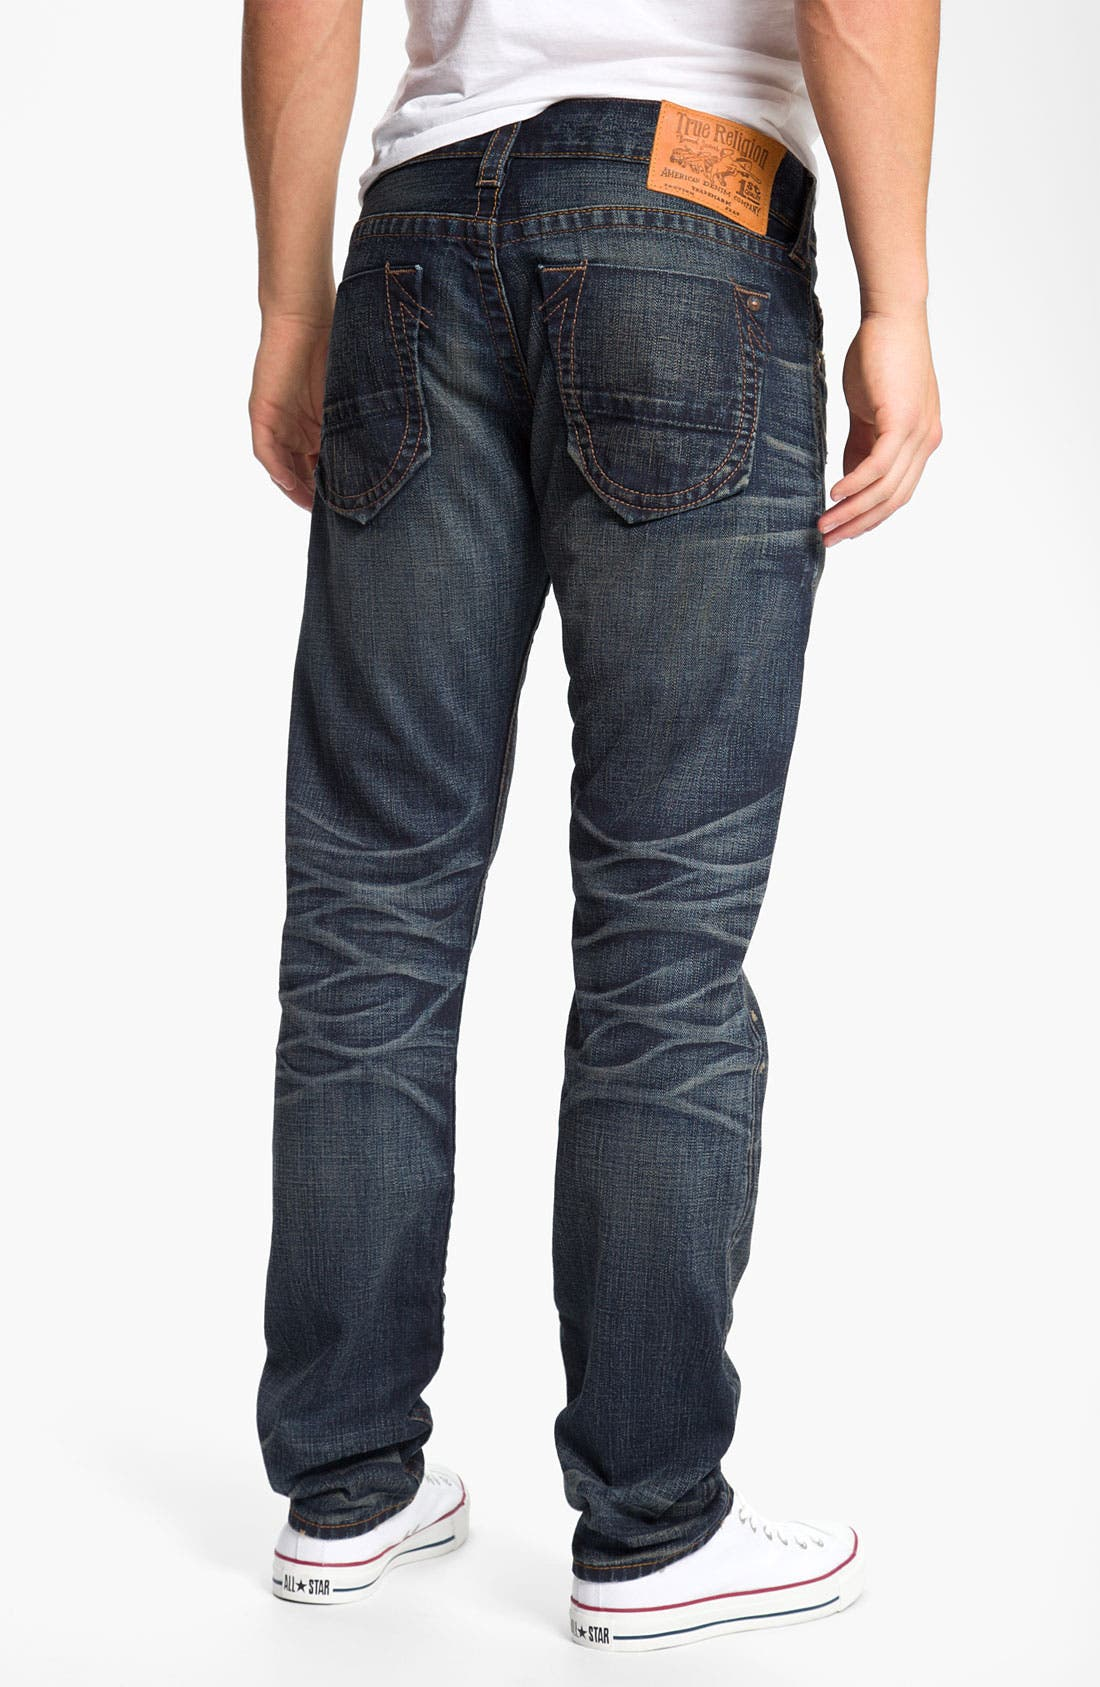 Alternate Image 1 Selected - True Religion Brand Jeans 'Geno' Slim Straight Leg Jeans (Snyper)